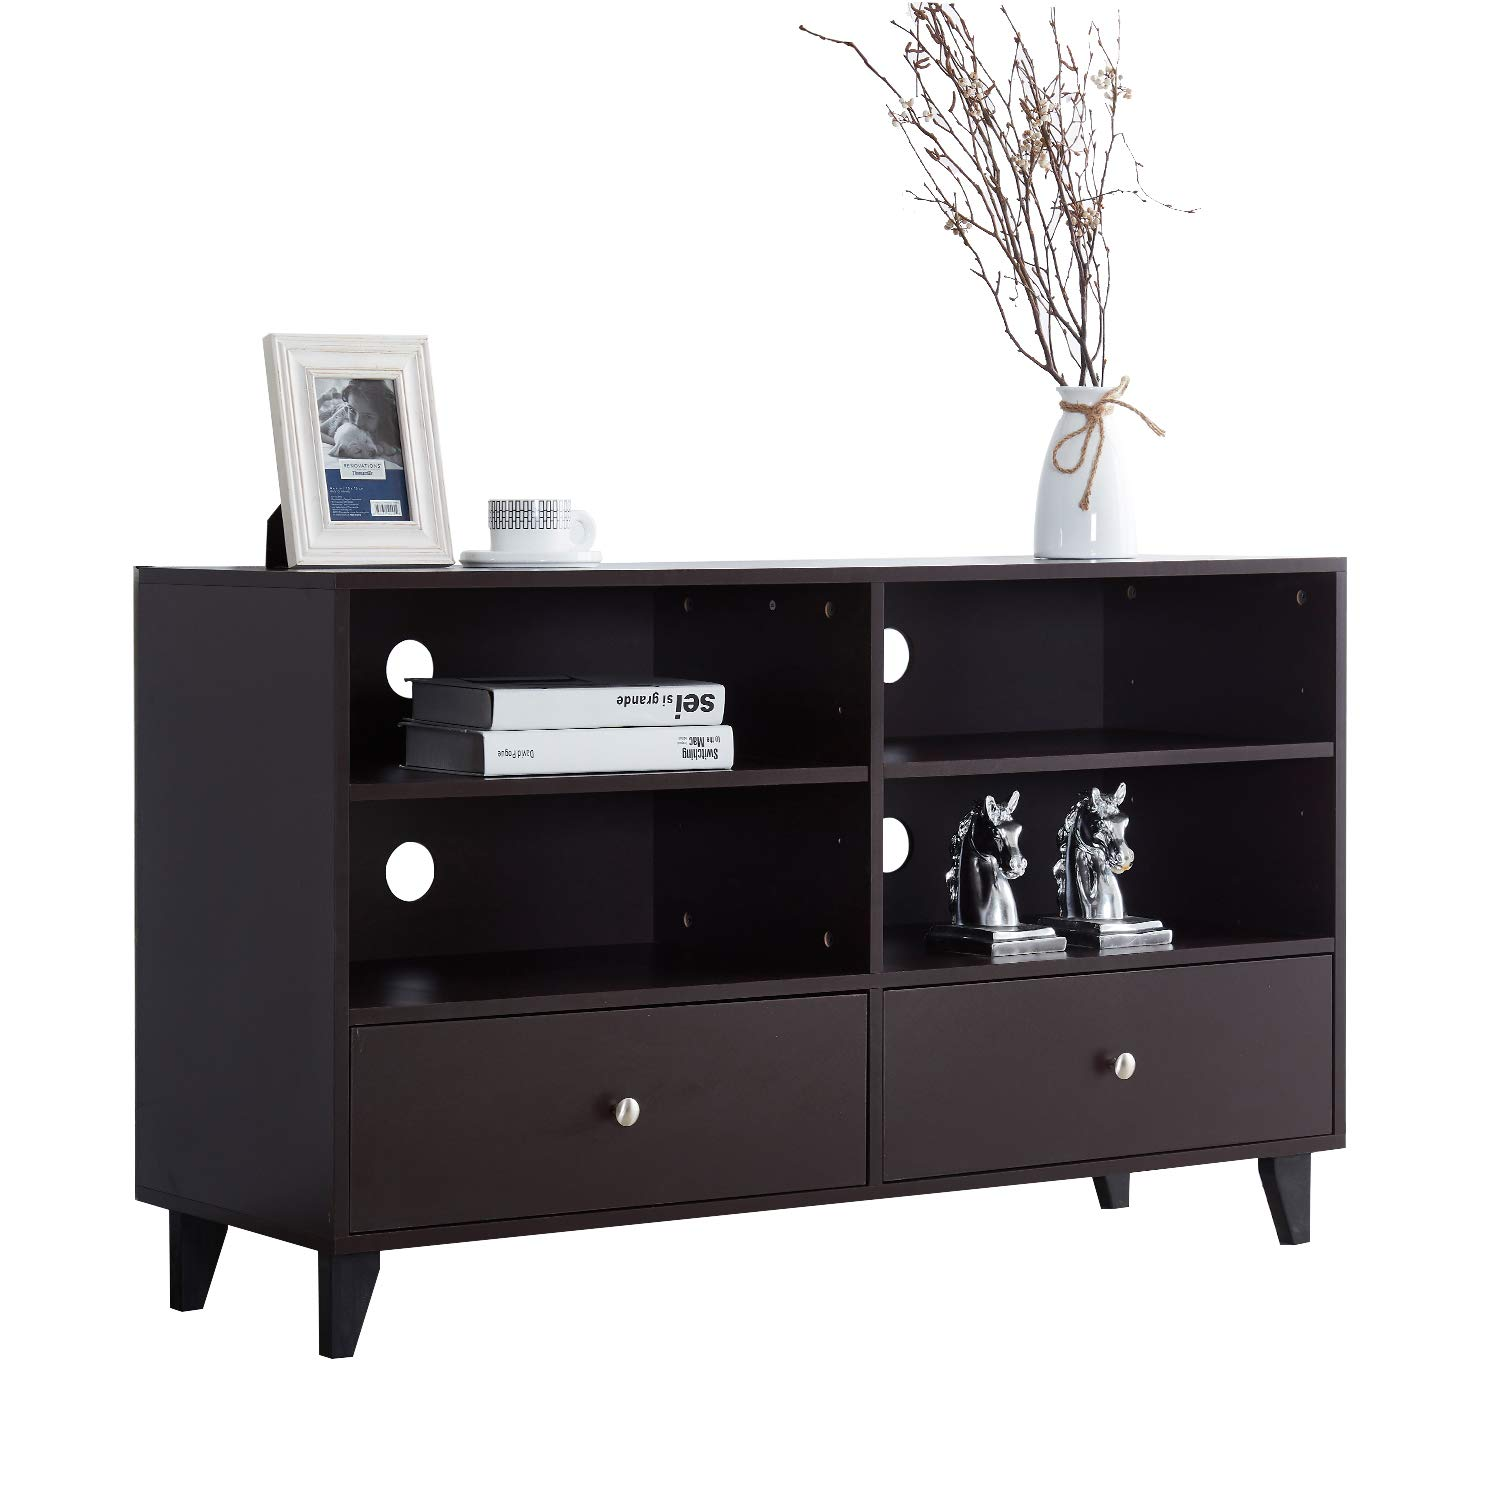 Soges Storage Cabinet Kitchen Sideboard Buffet Table Server Cabinet Cupboard with Drawers & Shelves Display Cabinet, Espresso HHGZ008-CF